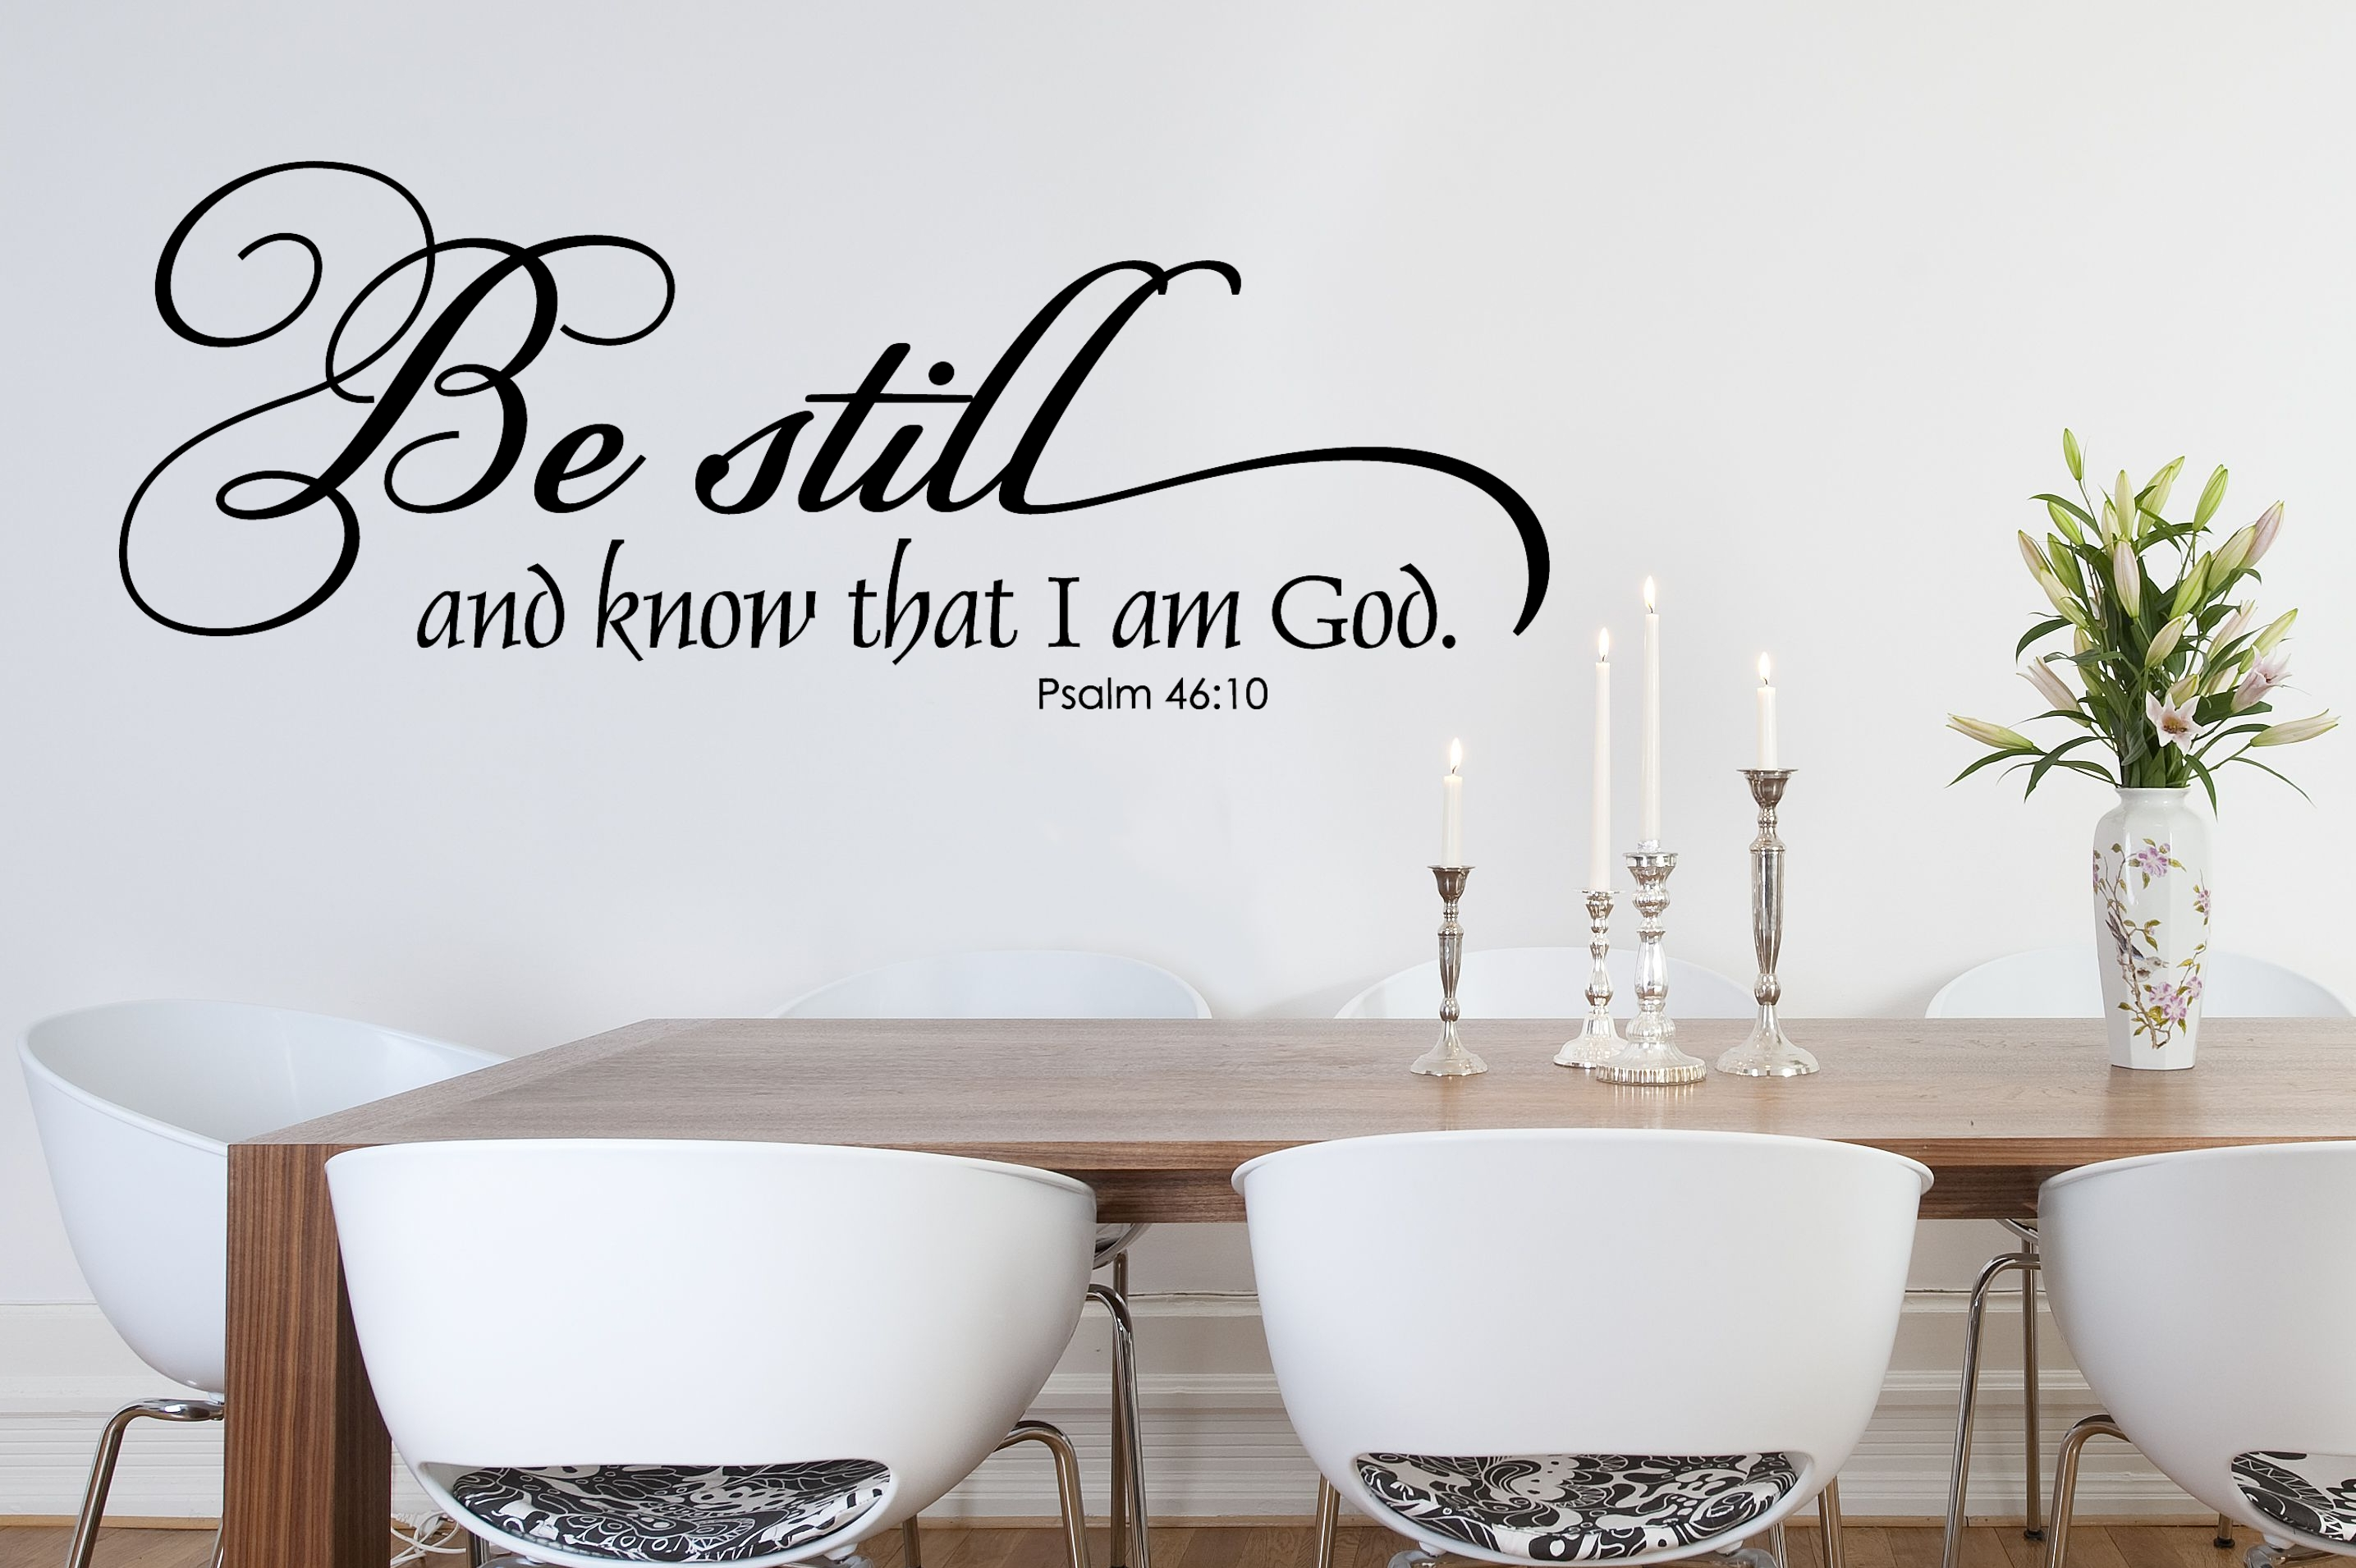 Christian Wall Decals With Scripture Vinyl Wall Art (Image 7 of 20)